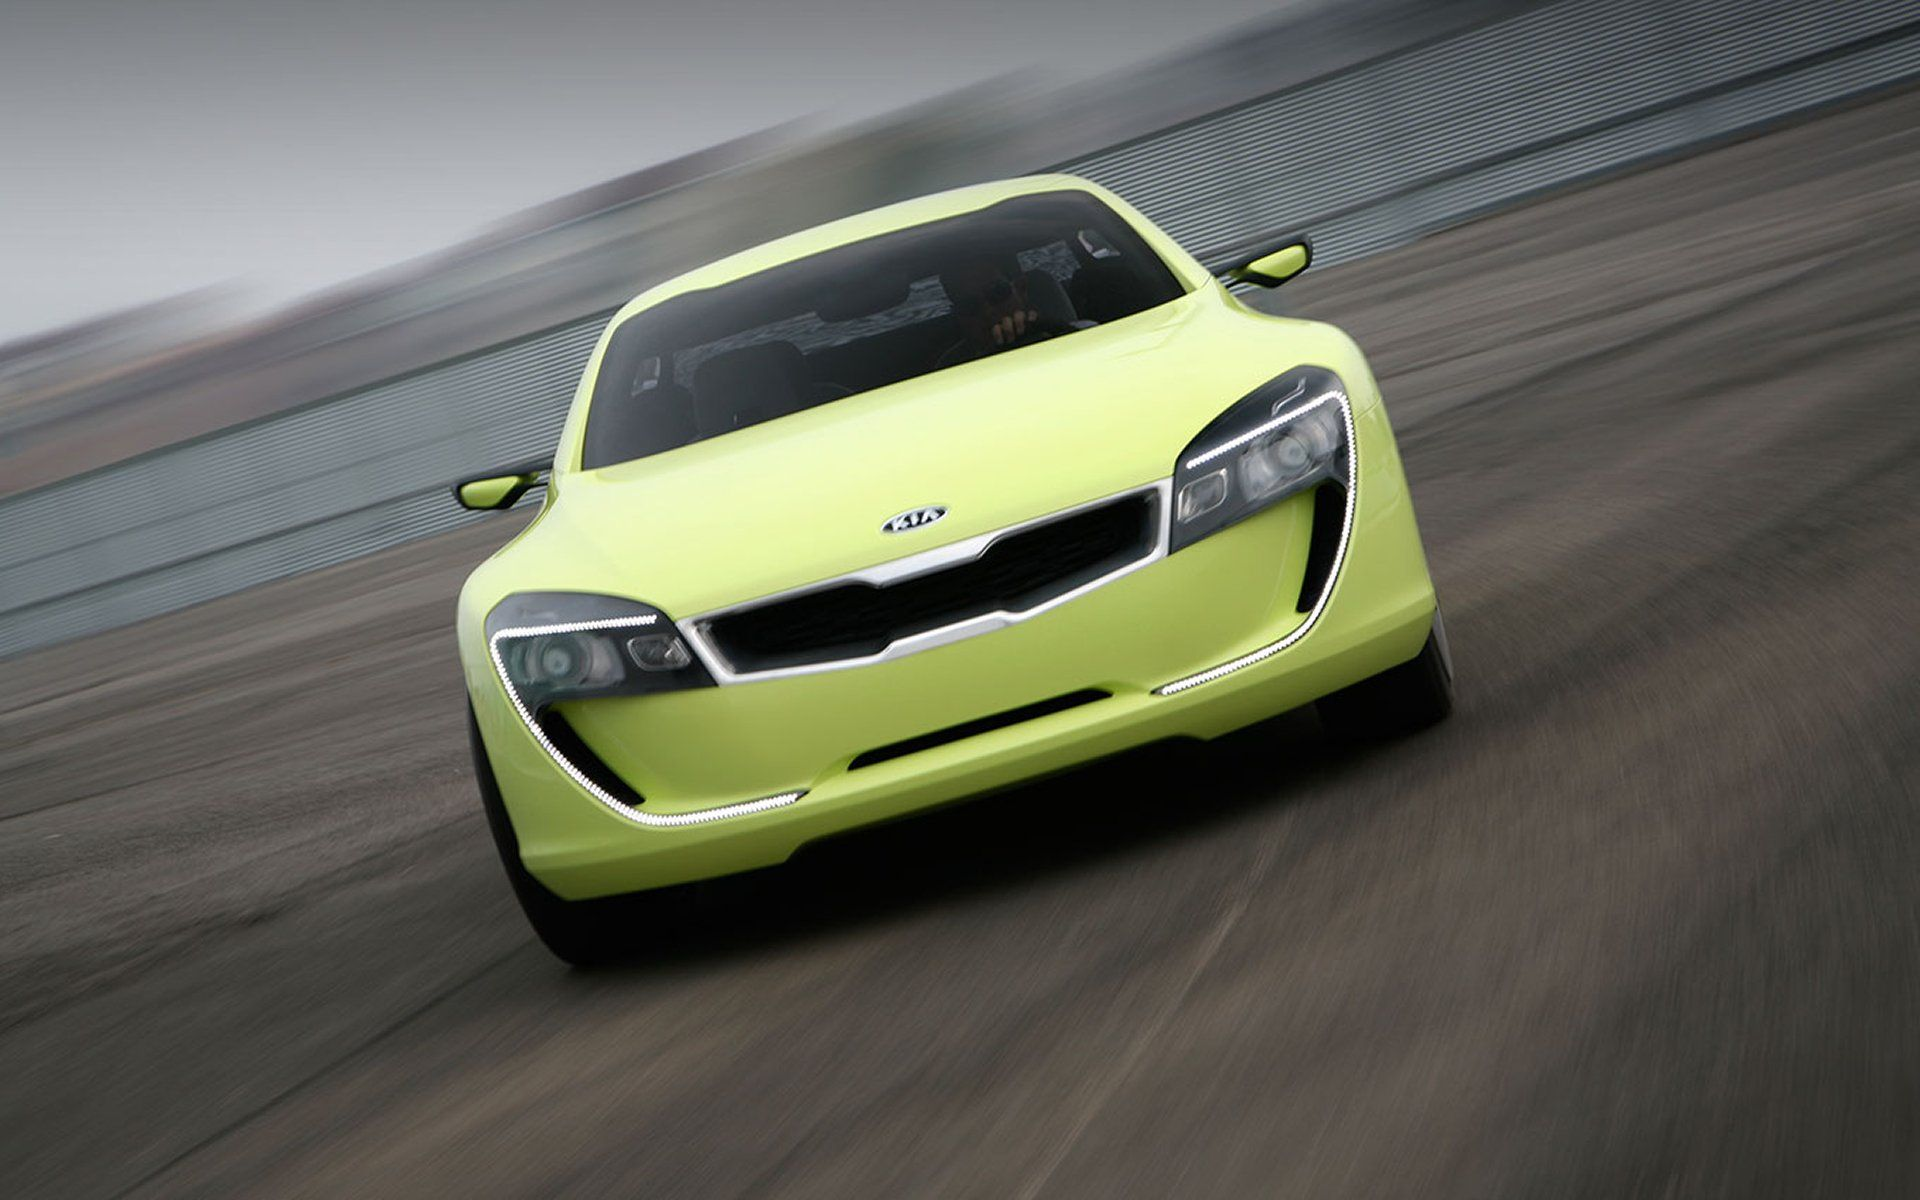 Kia Kee sports car Concept cars, Kia motors america, Kia